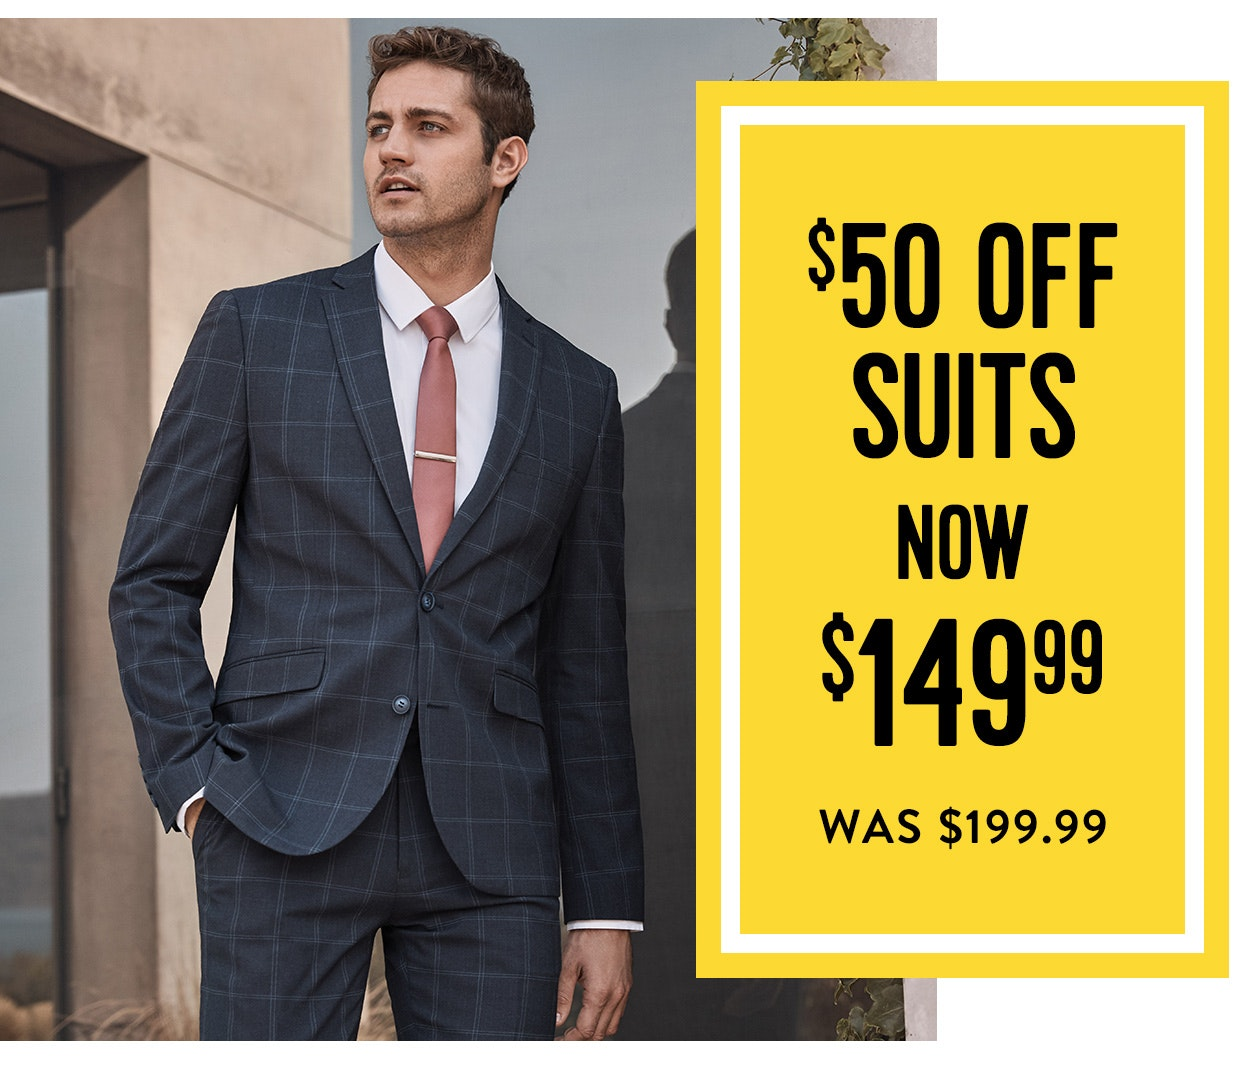 $50 off suits, ow $149.99